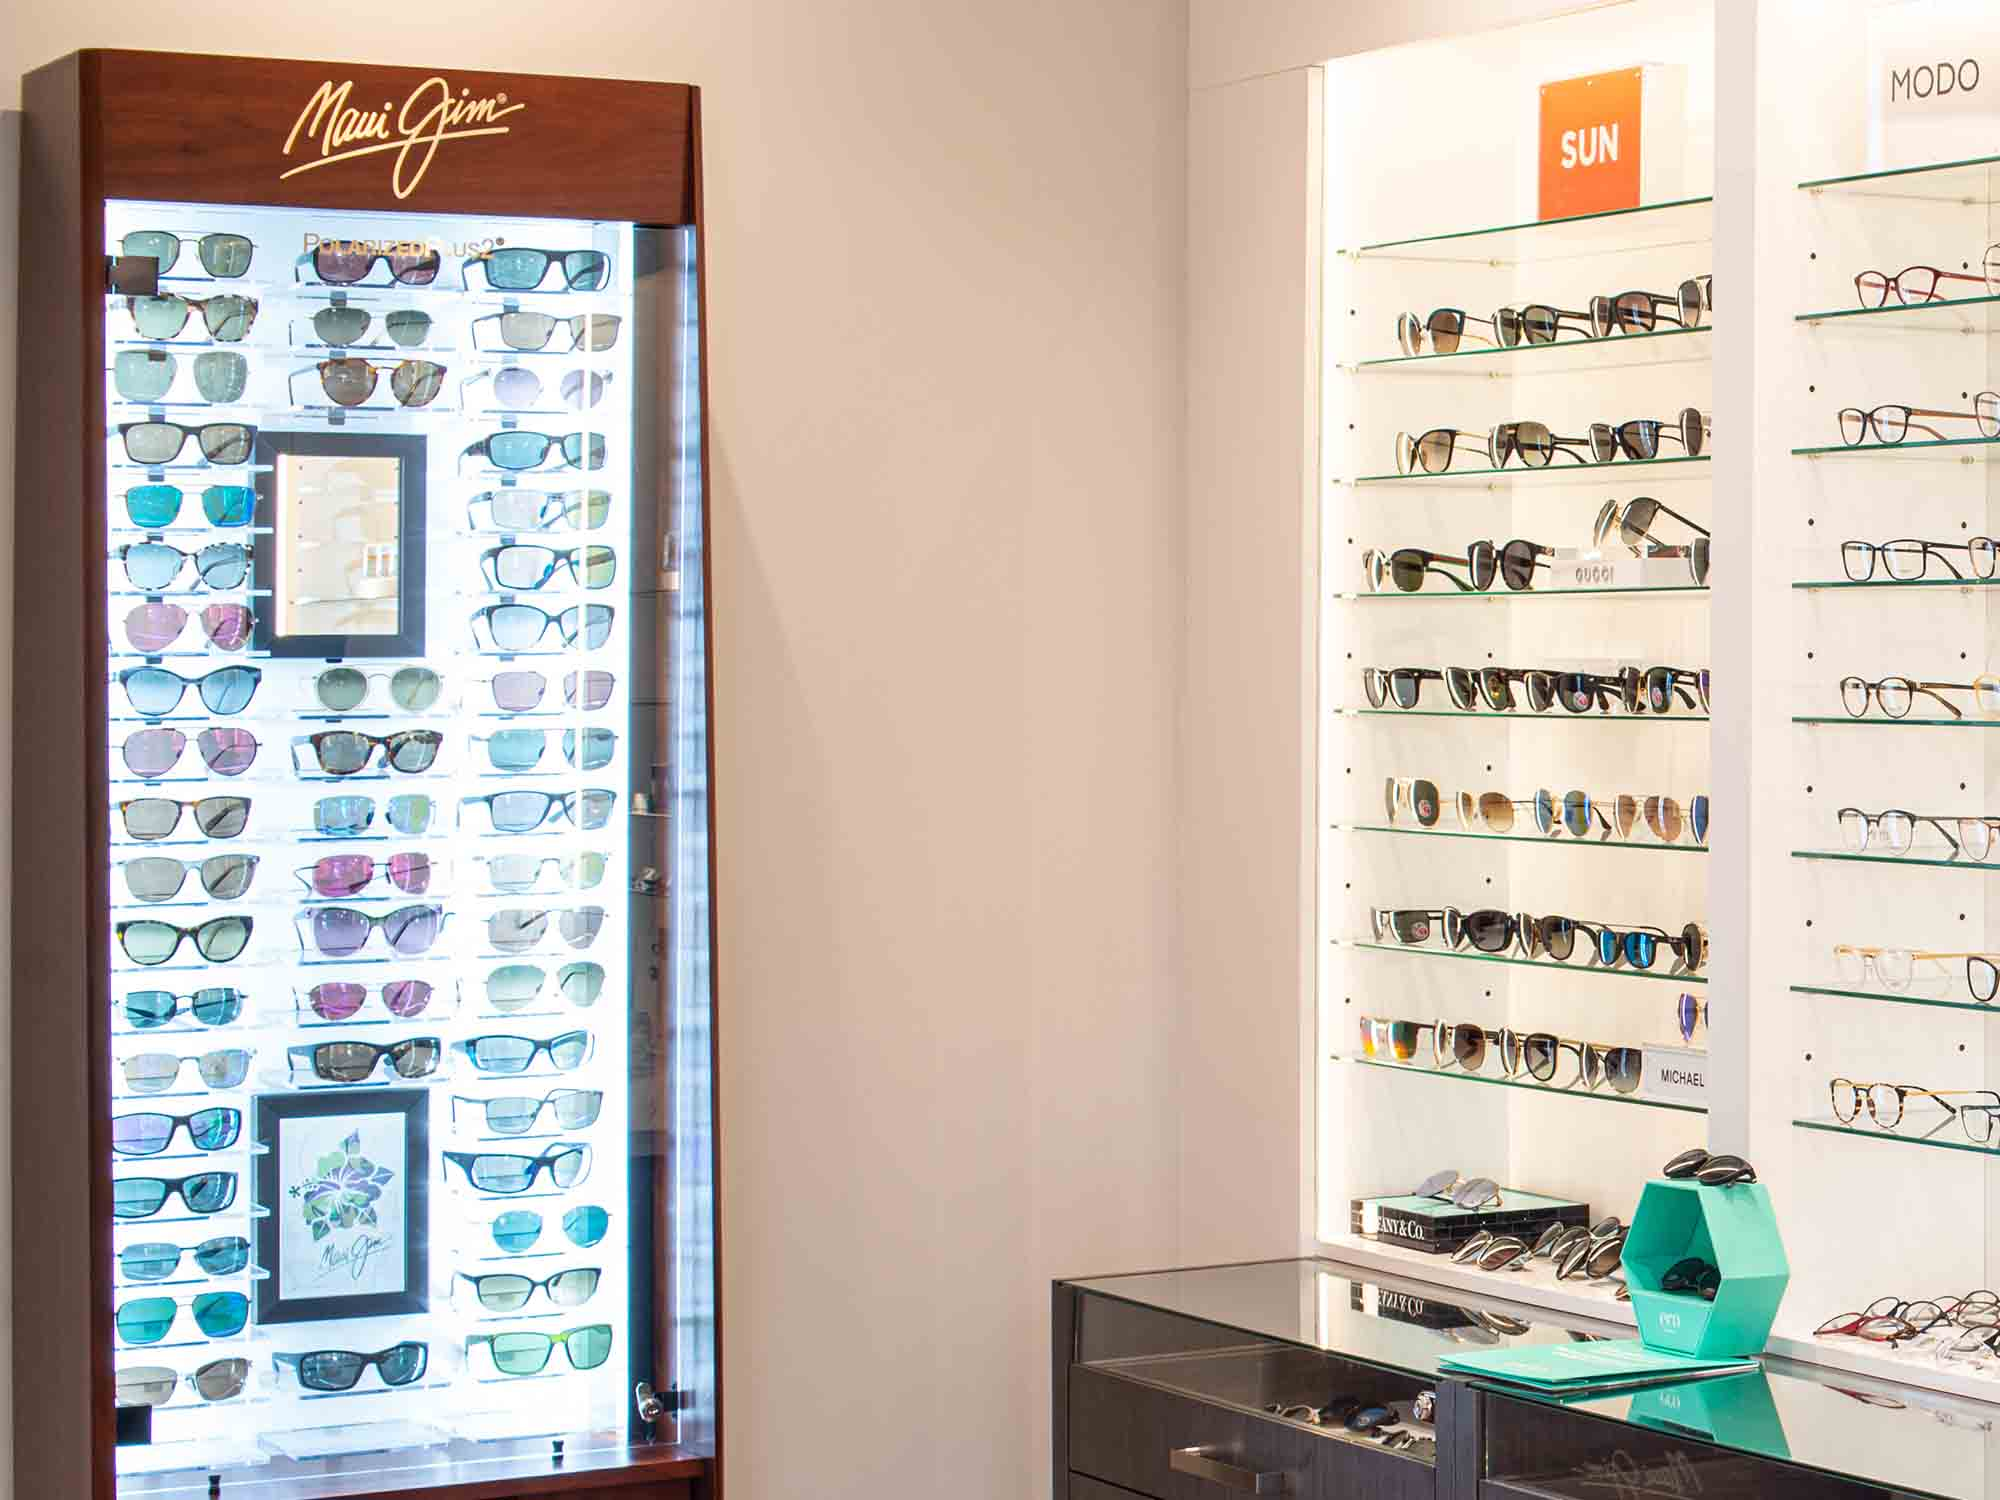 Marine View Optometry sunglasses display